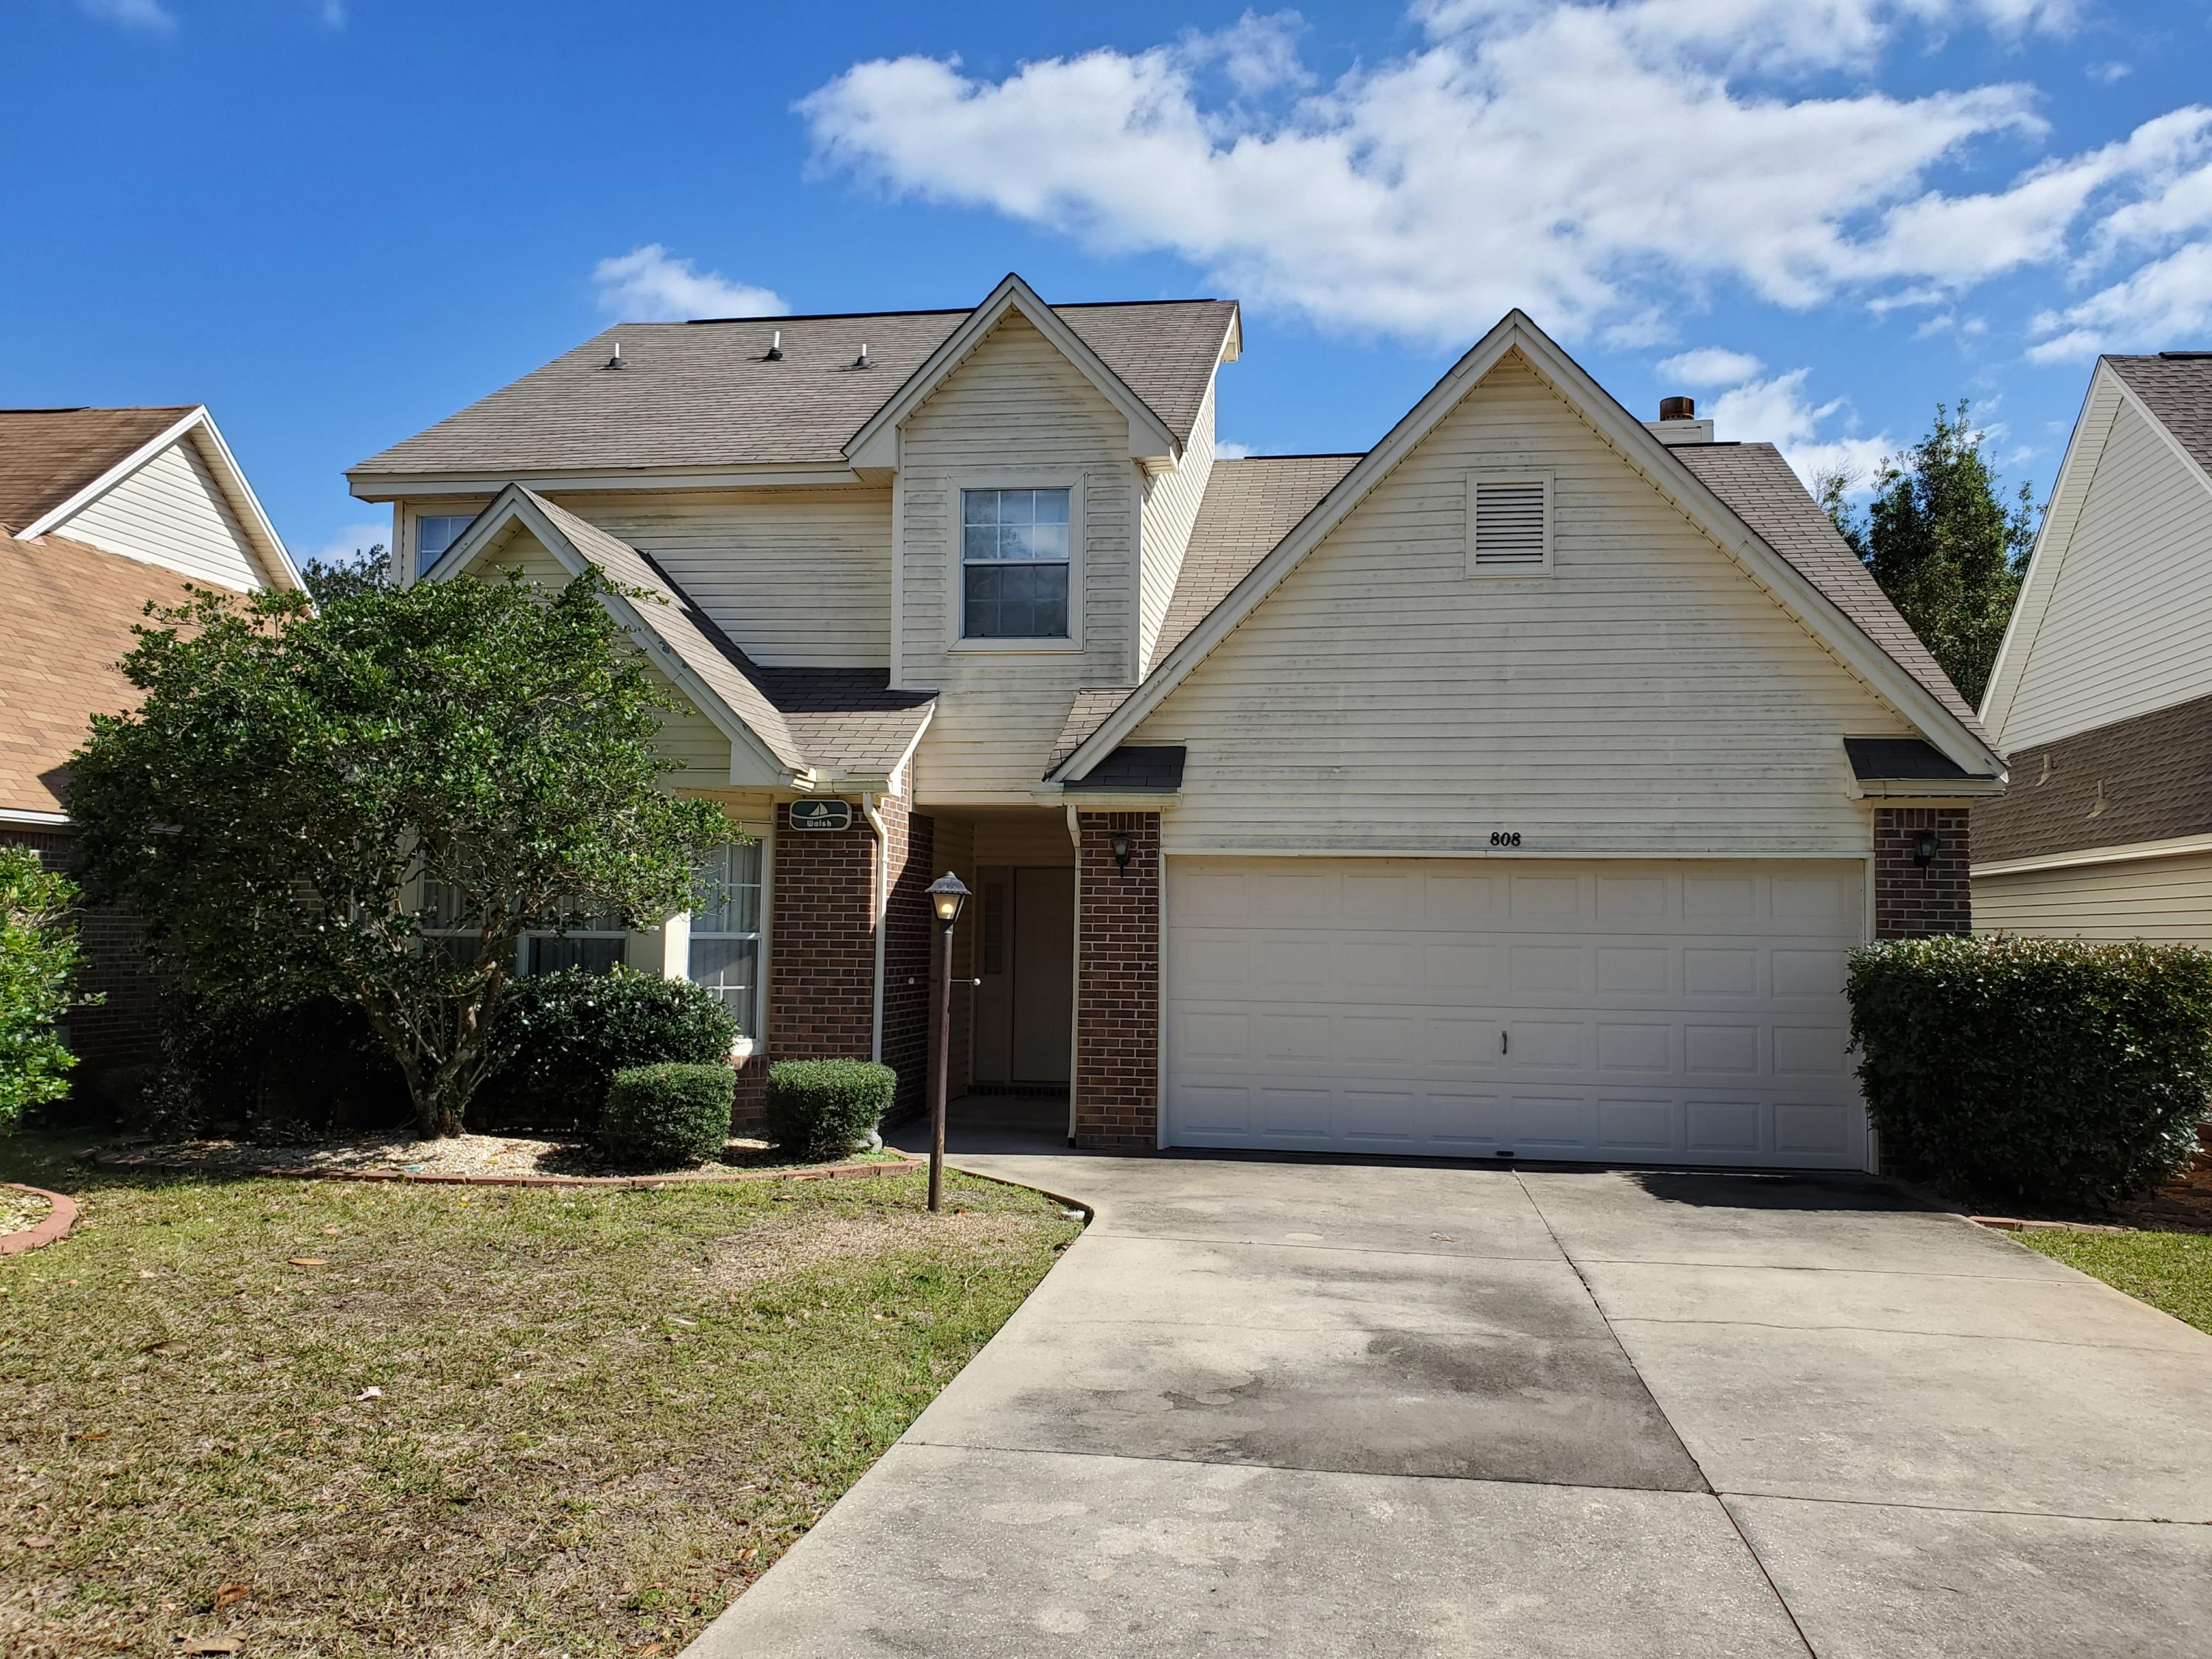 808  Fairway Lakes Drive, Niceville in Okaloosa County, FL 32578 Home for Sale